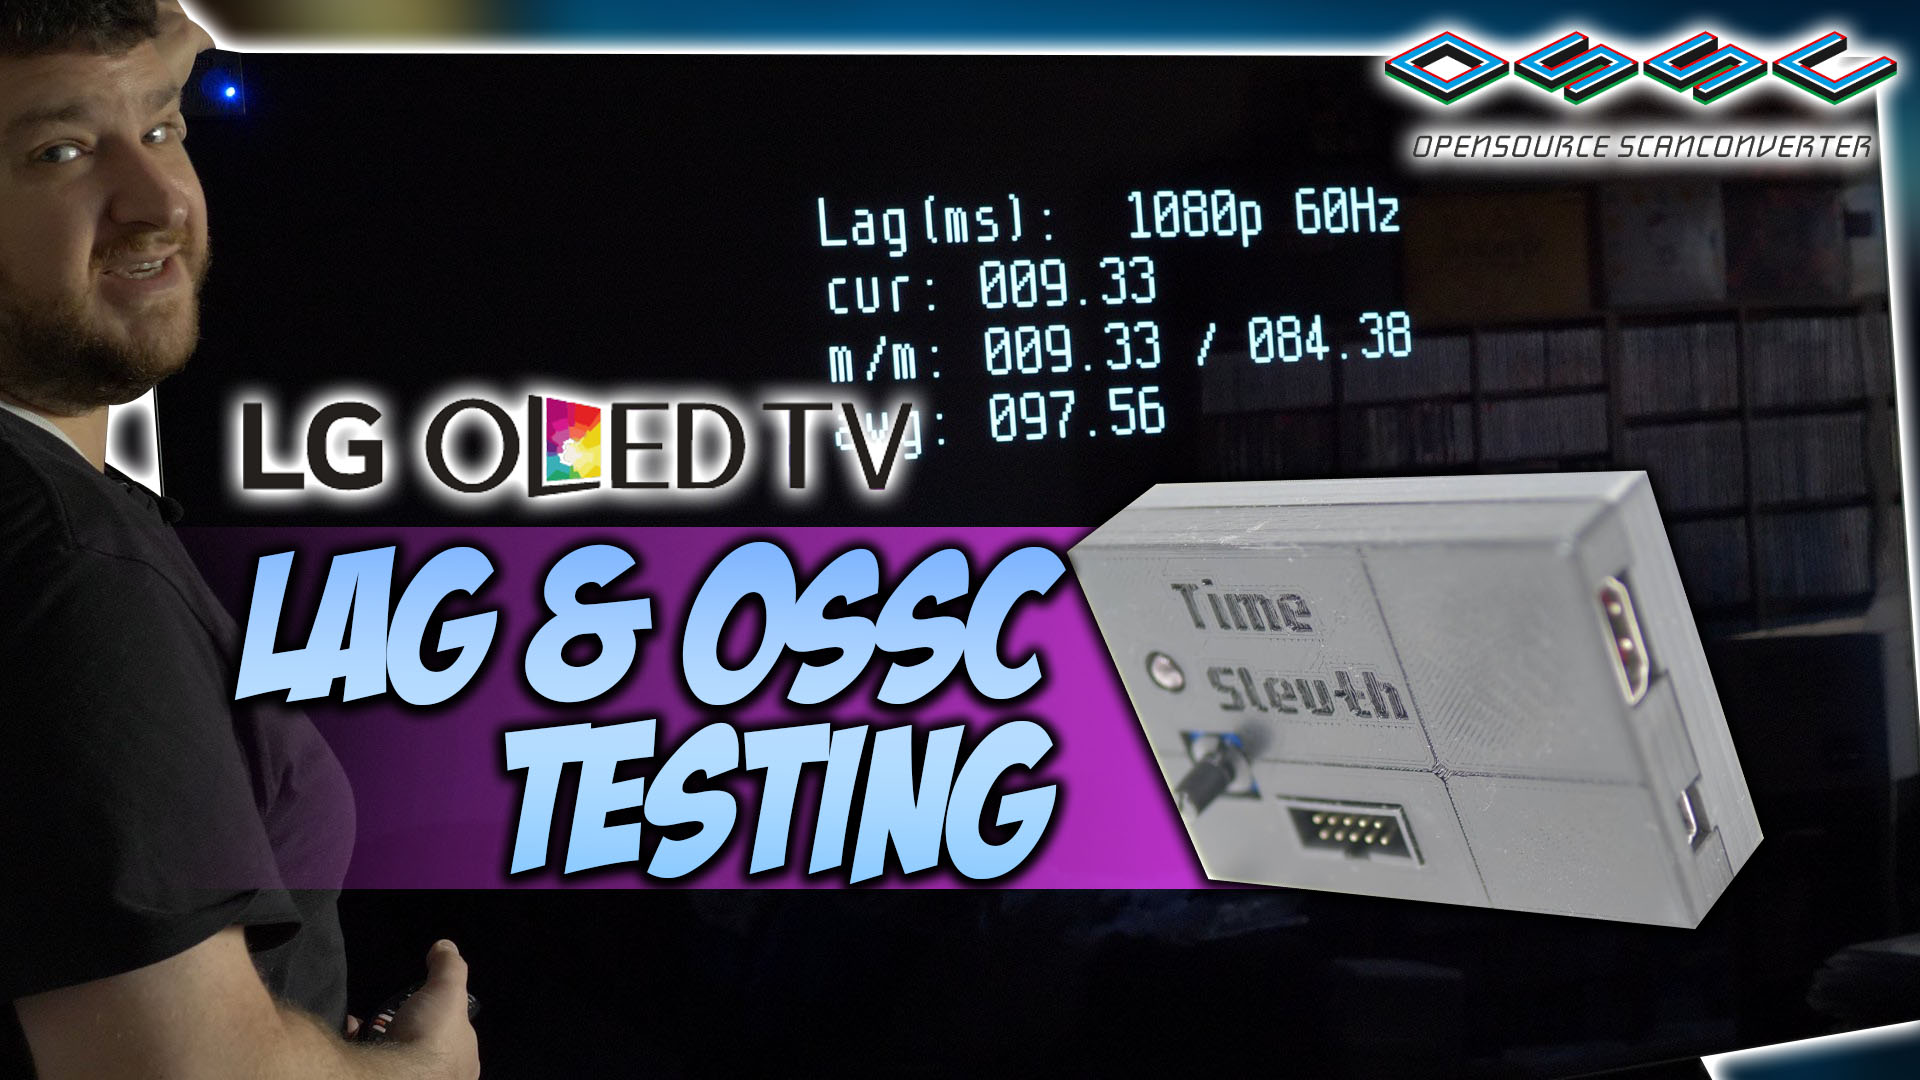 LG CX OLED:  Lag Tests and OSSC Compatibility